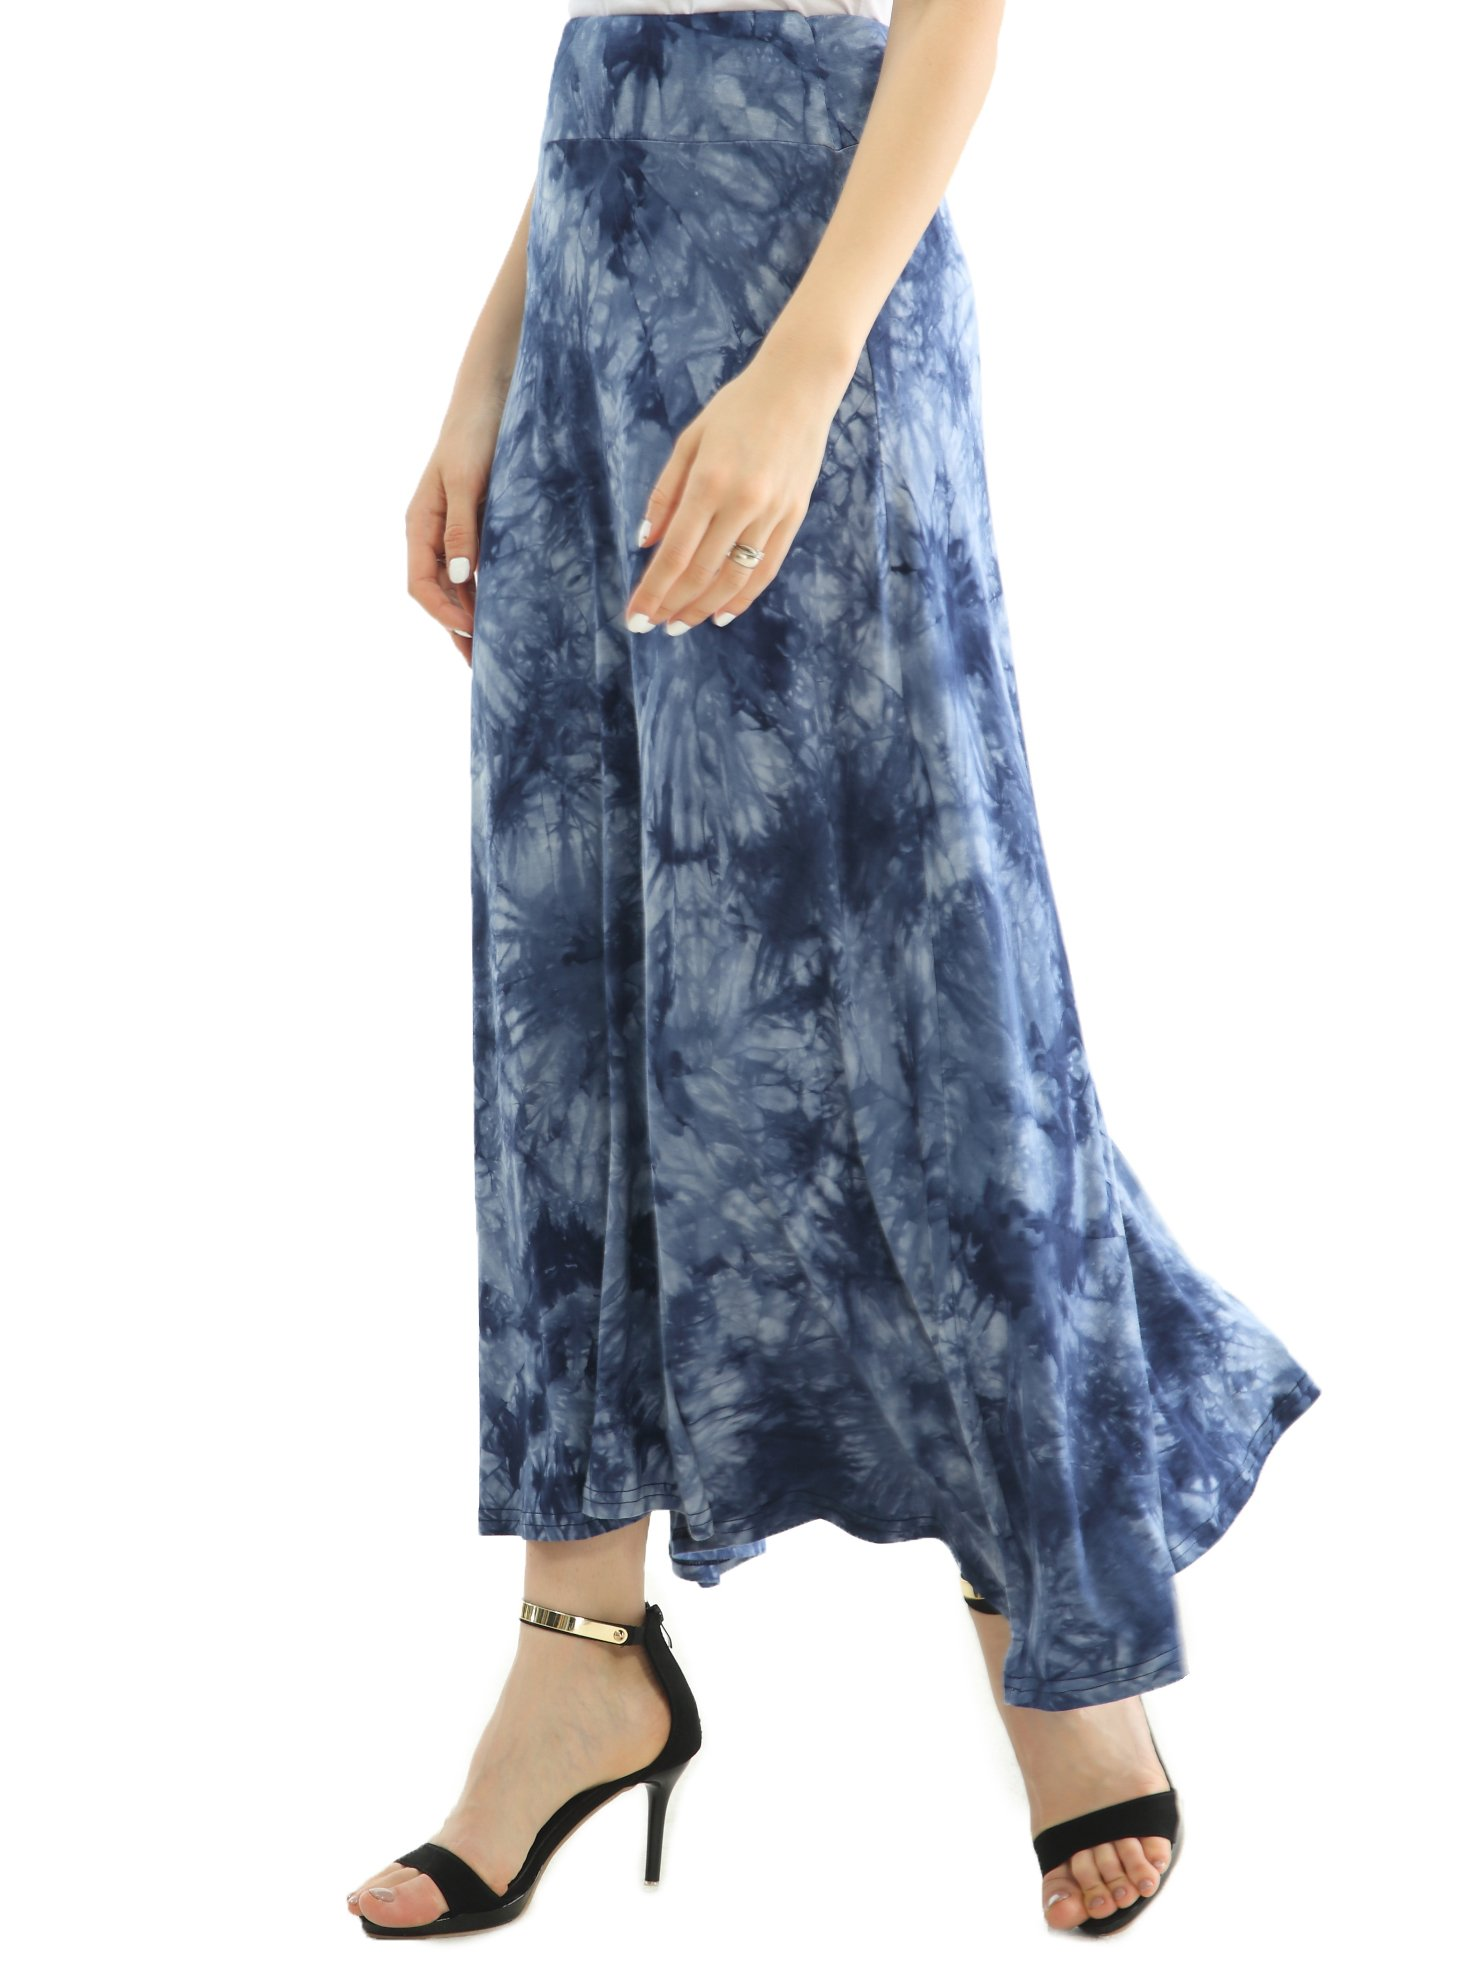 JOAUR Women's Casual Skirts Tie Dye Elastic Waist Fold Over Long Blue Maxi Skirt